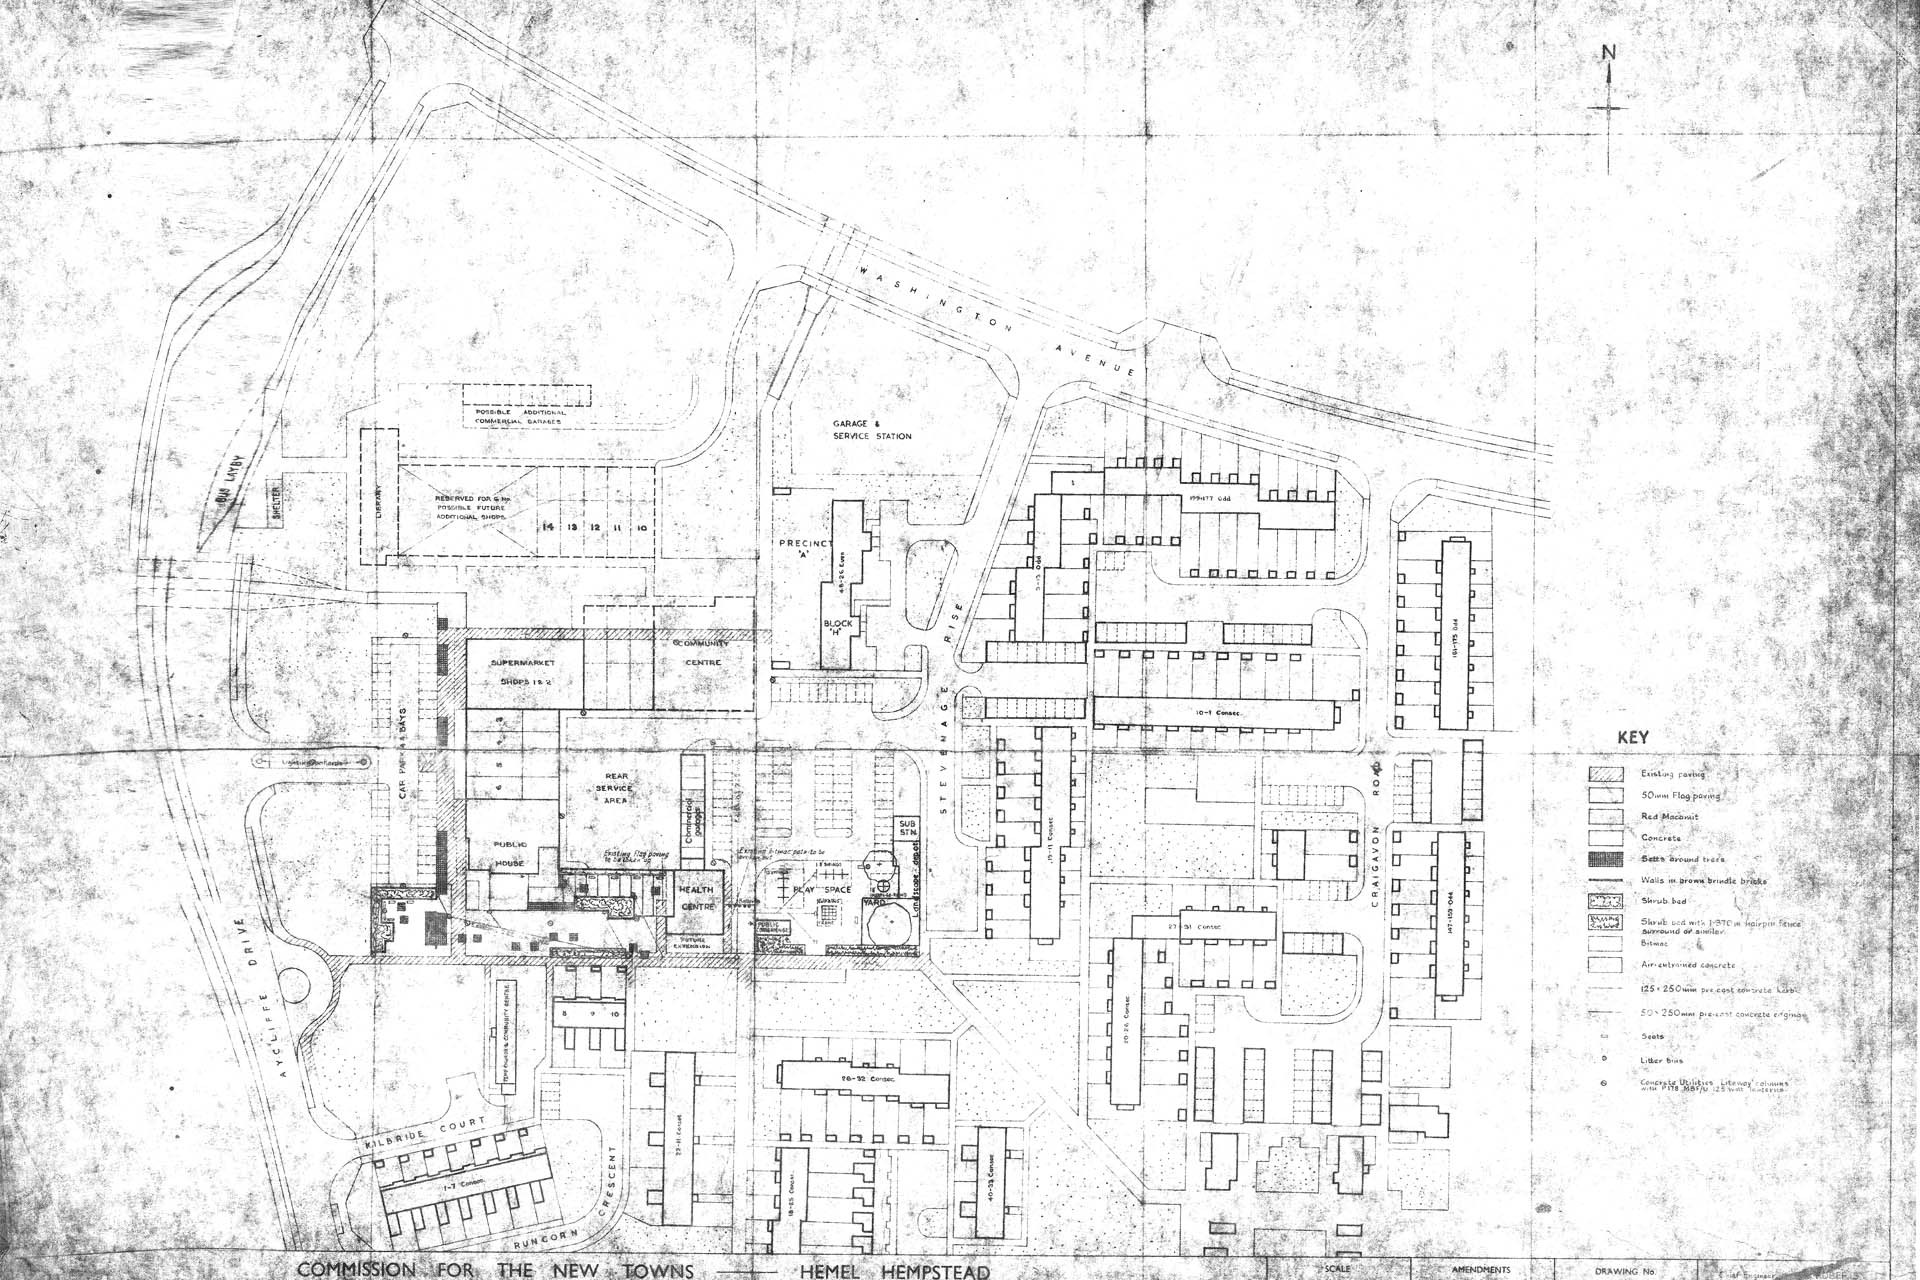 Original Plan of Grovehill